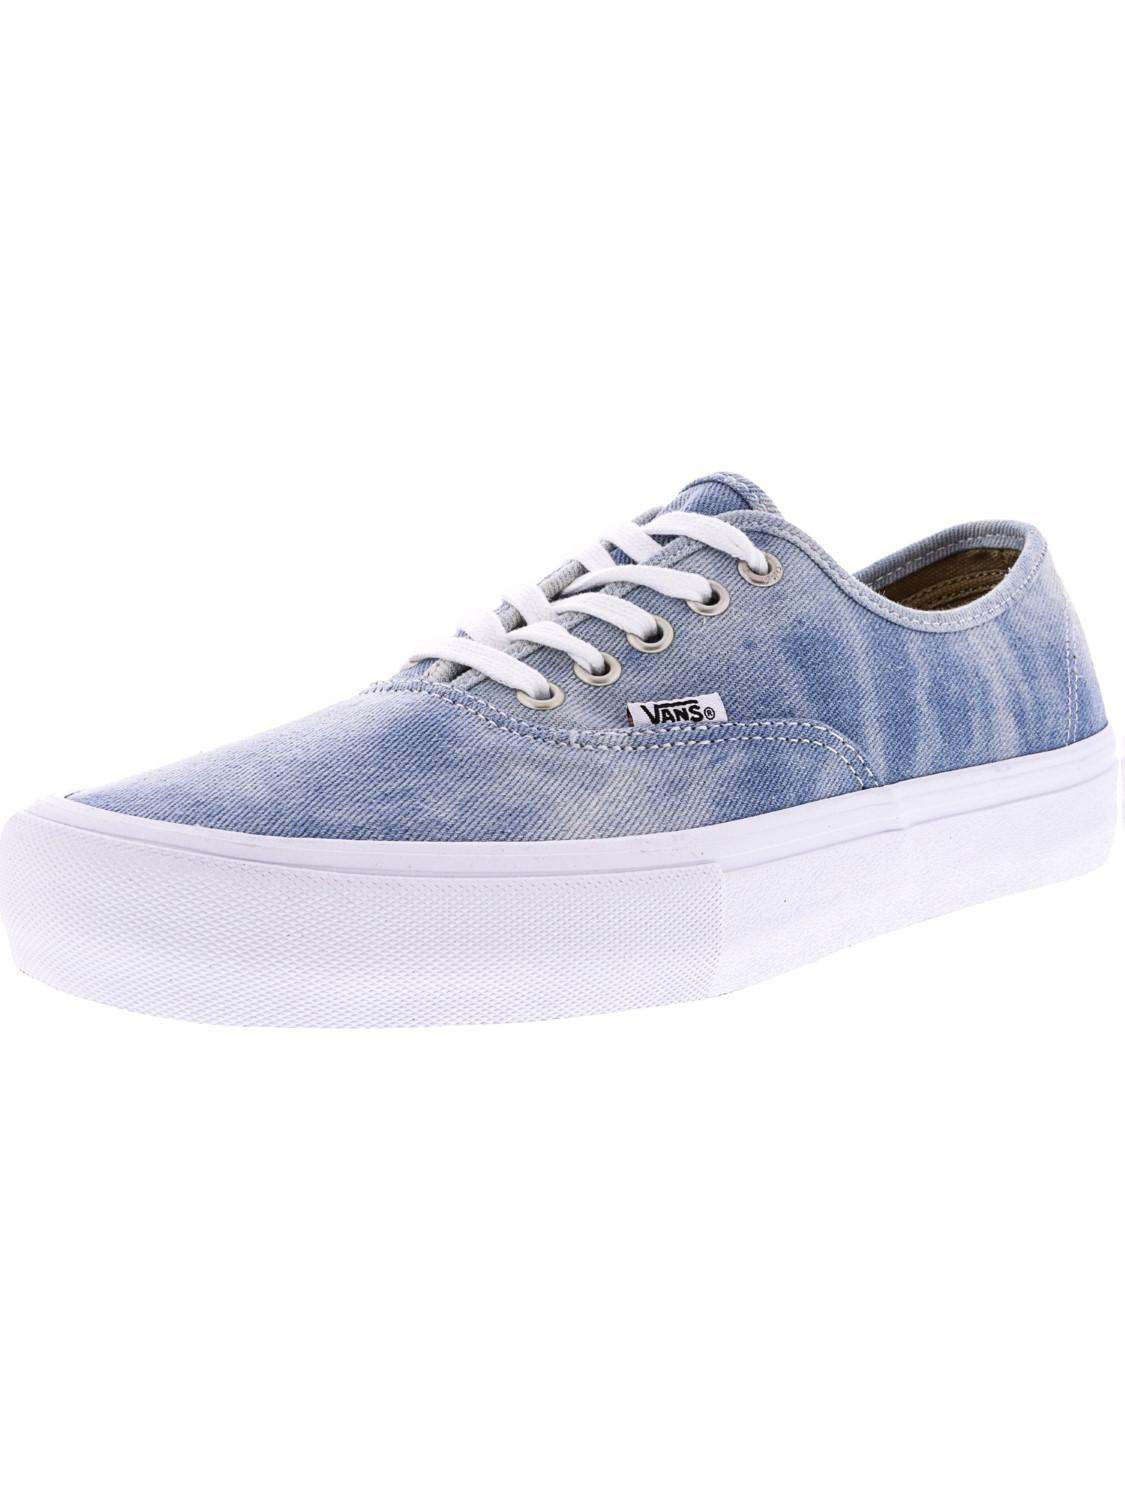 f0d3f48fdc9 Lyst - Vans Authentic Pro Ankle-high Suede Skateboarding Shoe - 10.5 ...